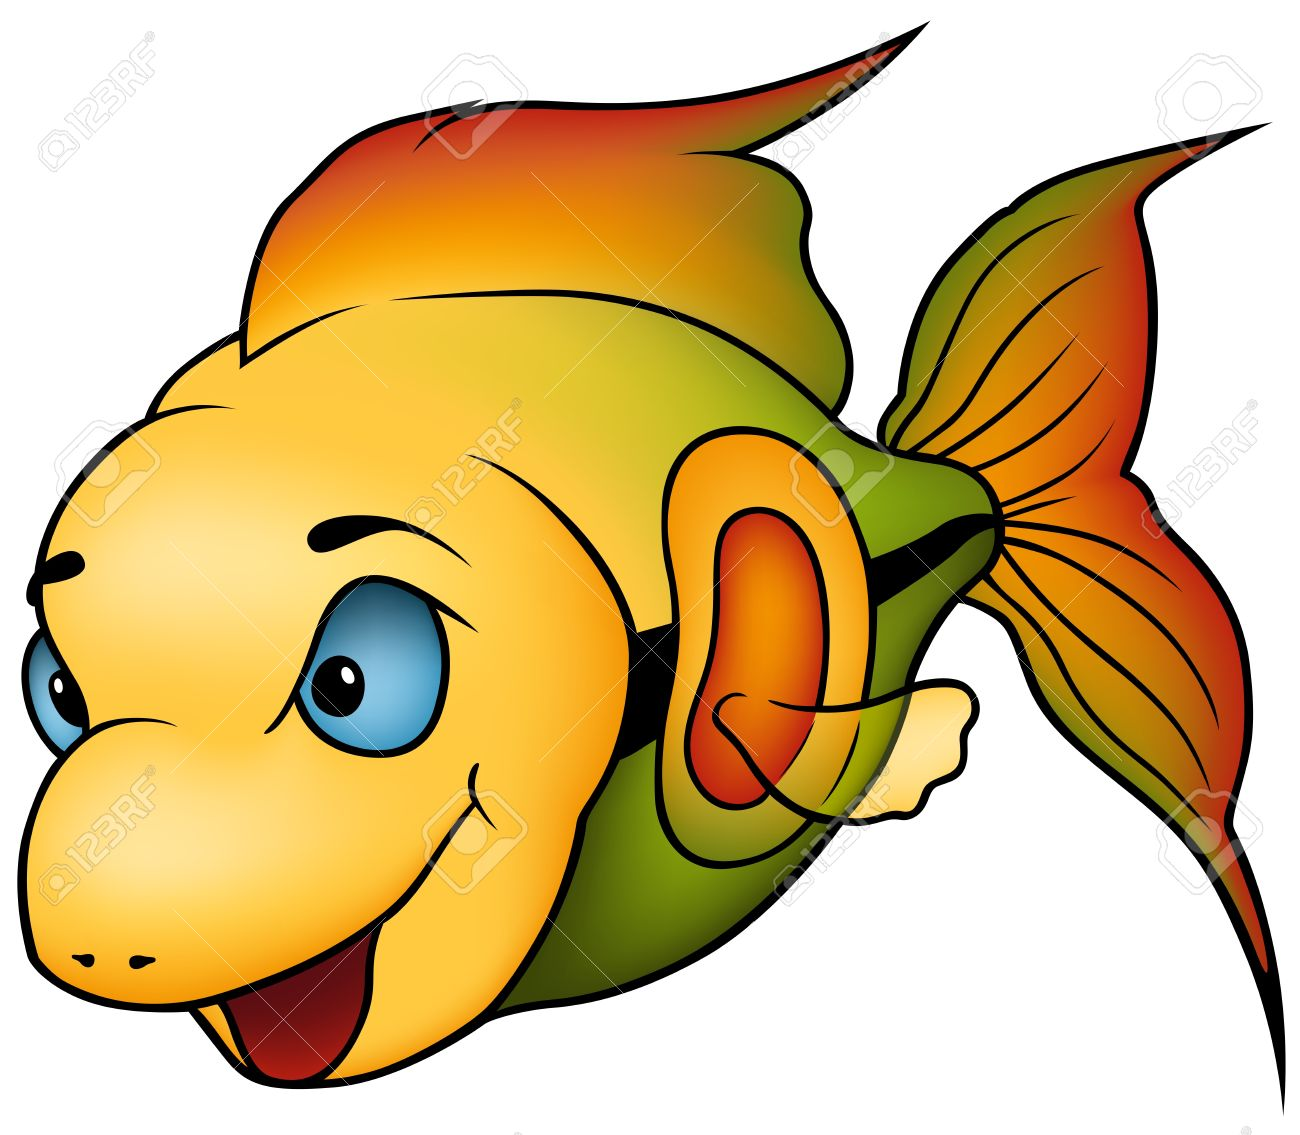 tropical fish colored cartoon illustration royalty free cliparts